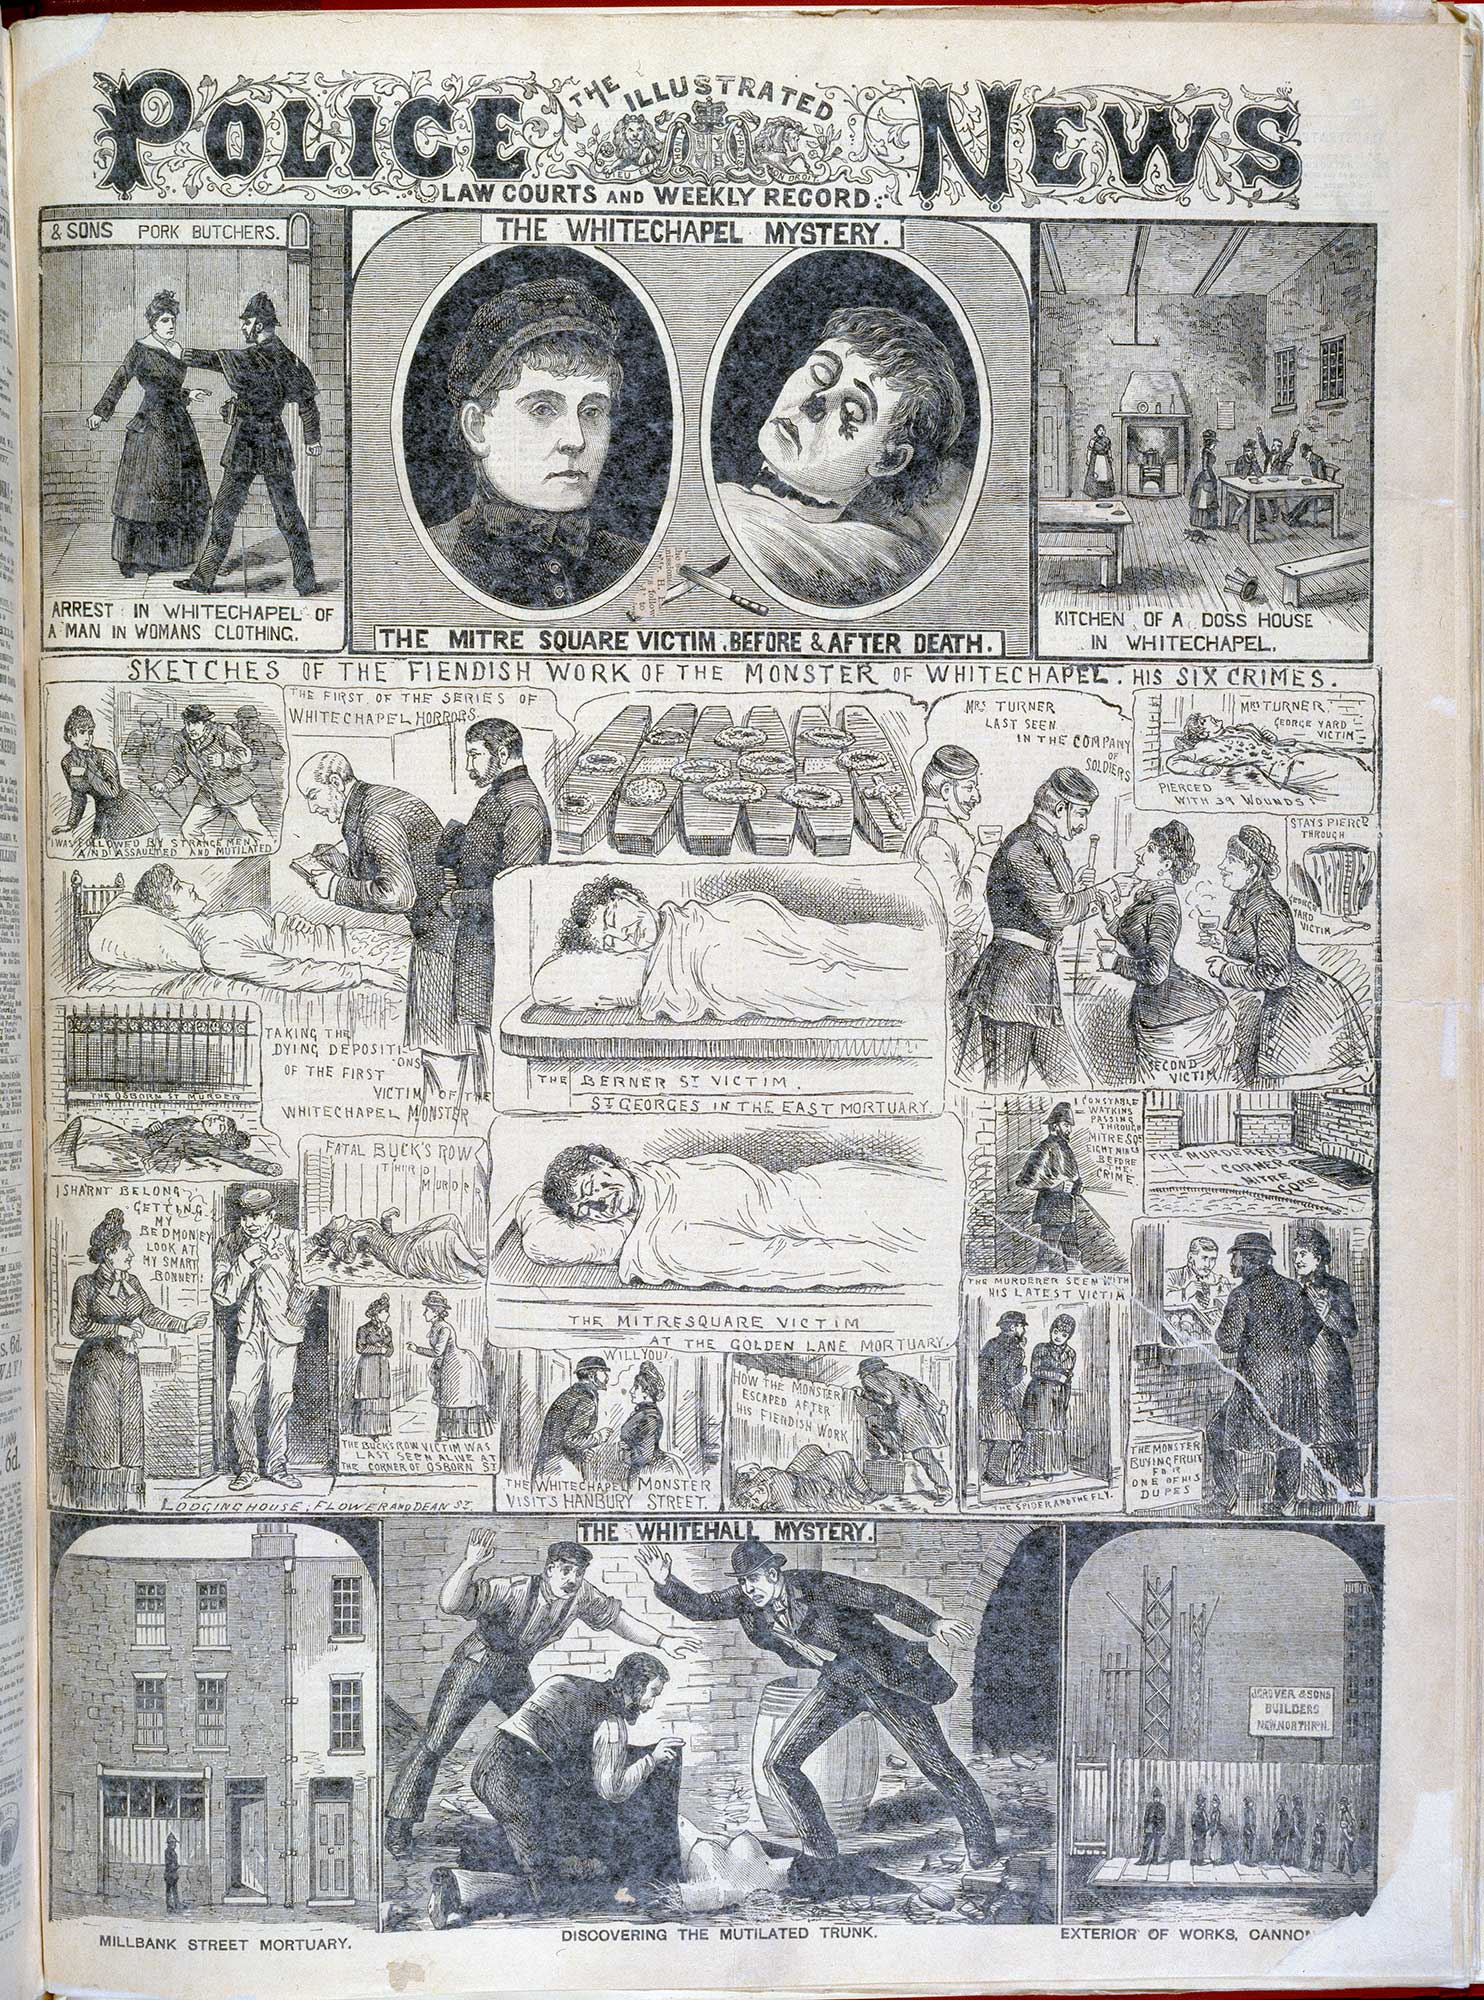 The Whitechapel mystery' from the Illustrated Police News [page: [1]]